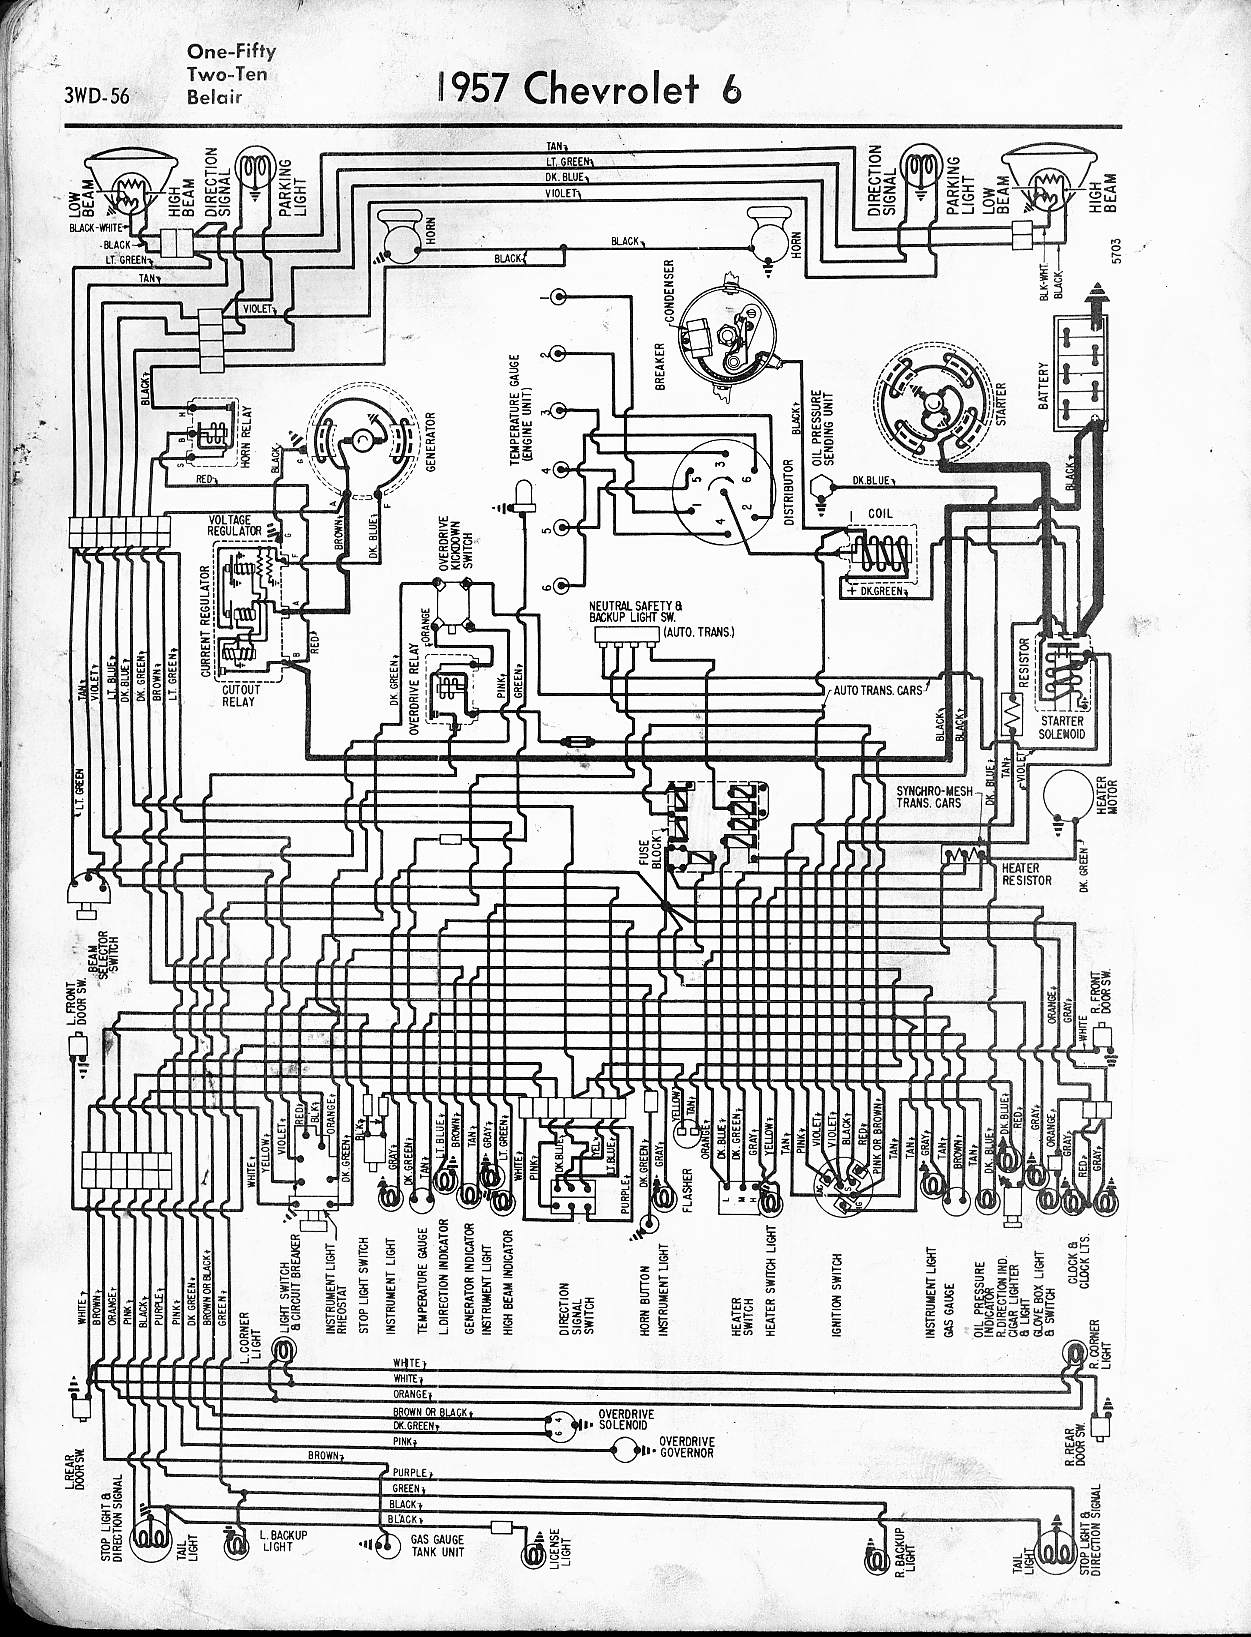 57 65 chevy wiring diagrams rh oldcarmanualproject com 1957 chevrolet bel air wiring diagram 1957 chevy bel air headlight switch wiring diagram